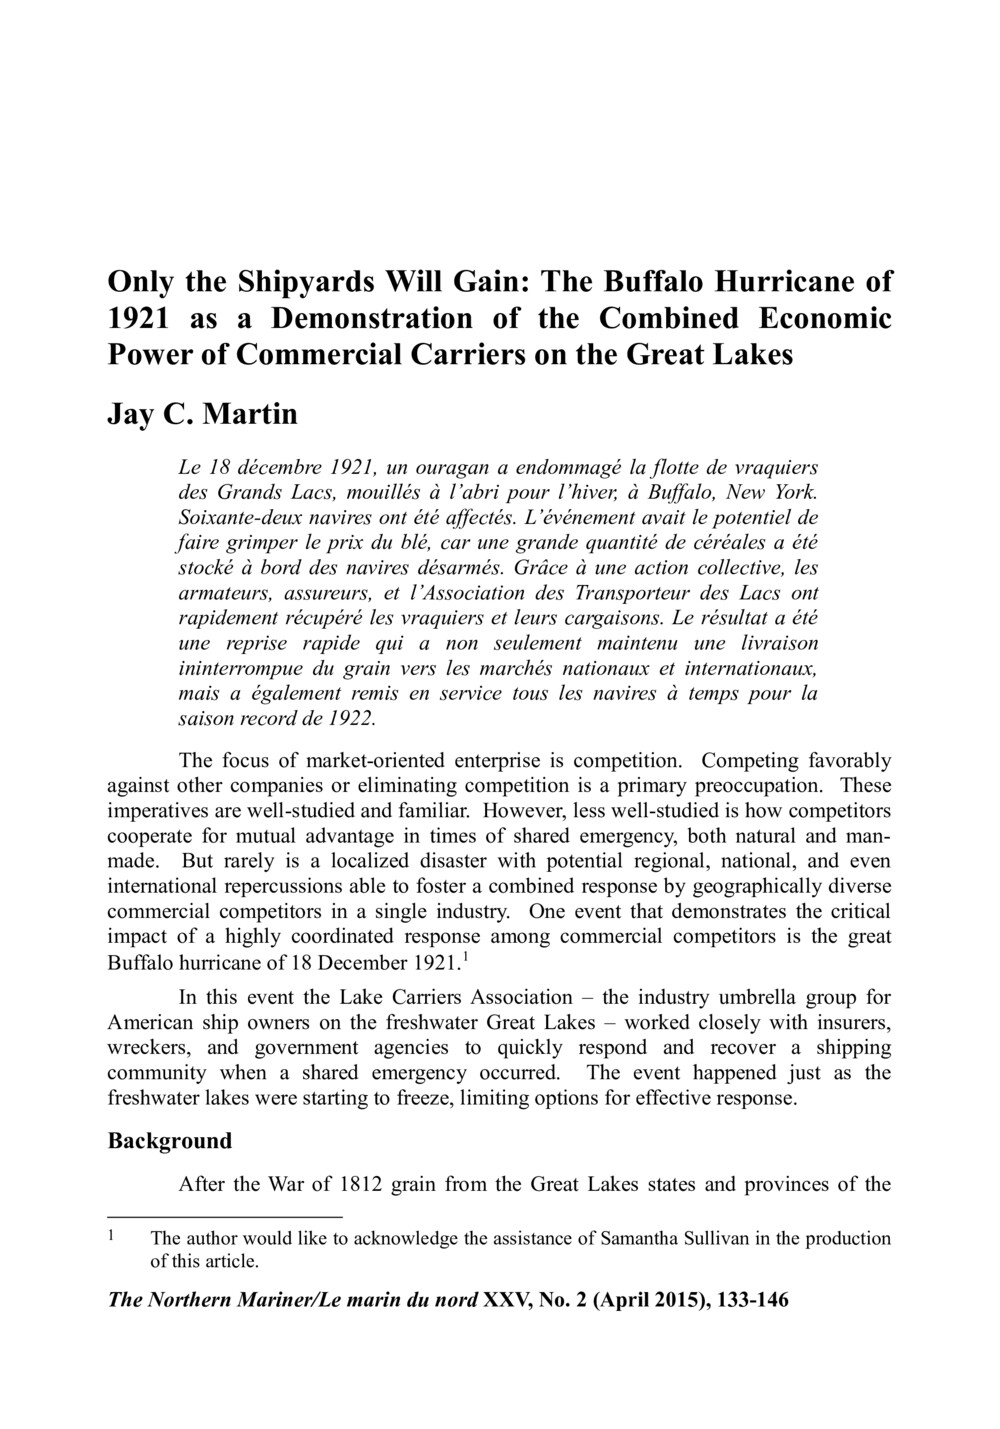 Only the Shipyards Will Gain: The Buffalo Hurricane of 1921 as a Demonstration of the Combined Economic Power of Commercial Carriers on the Great Lakes